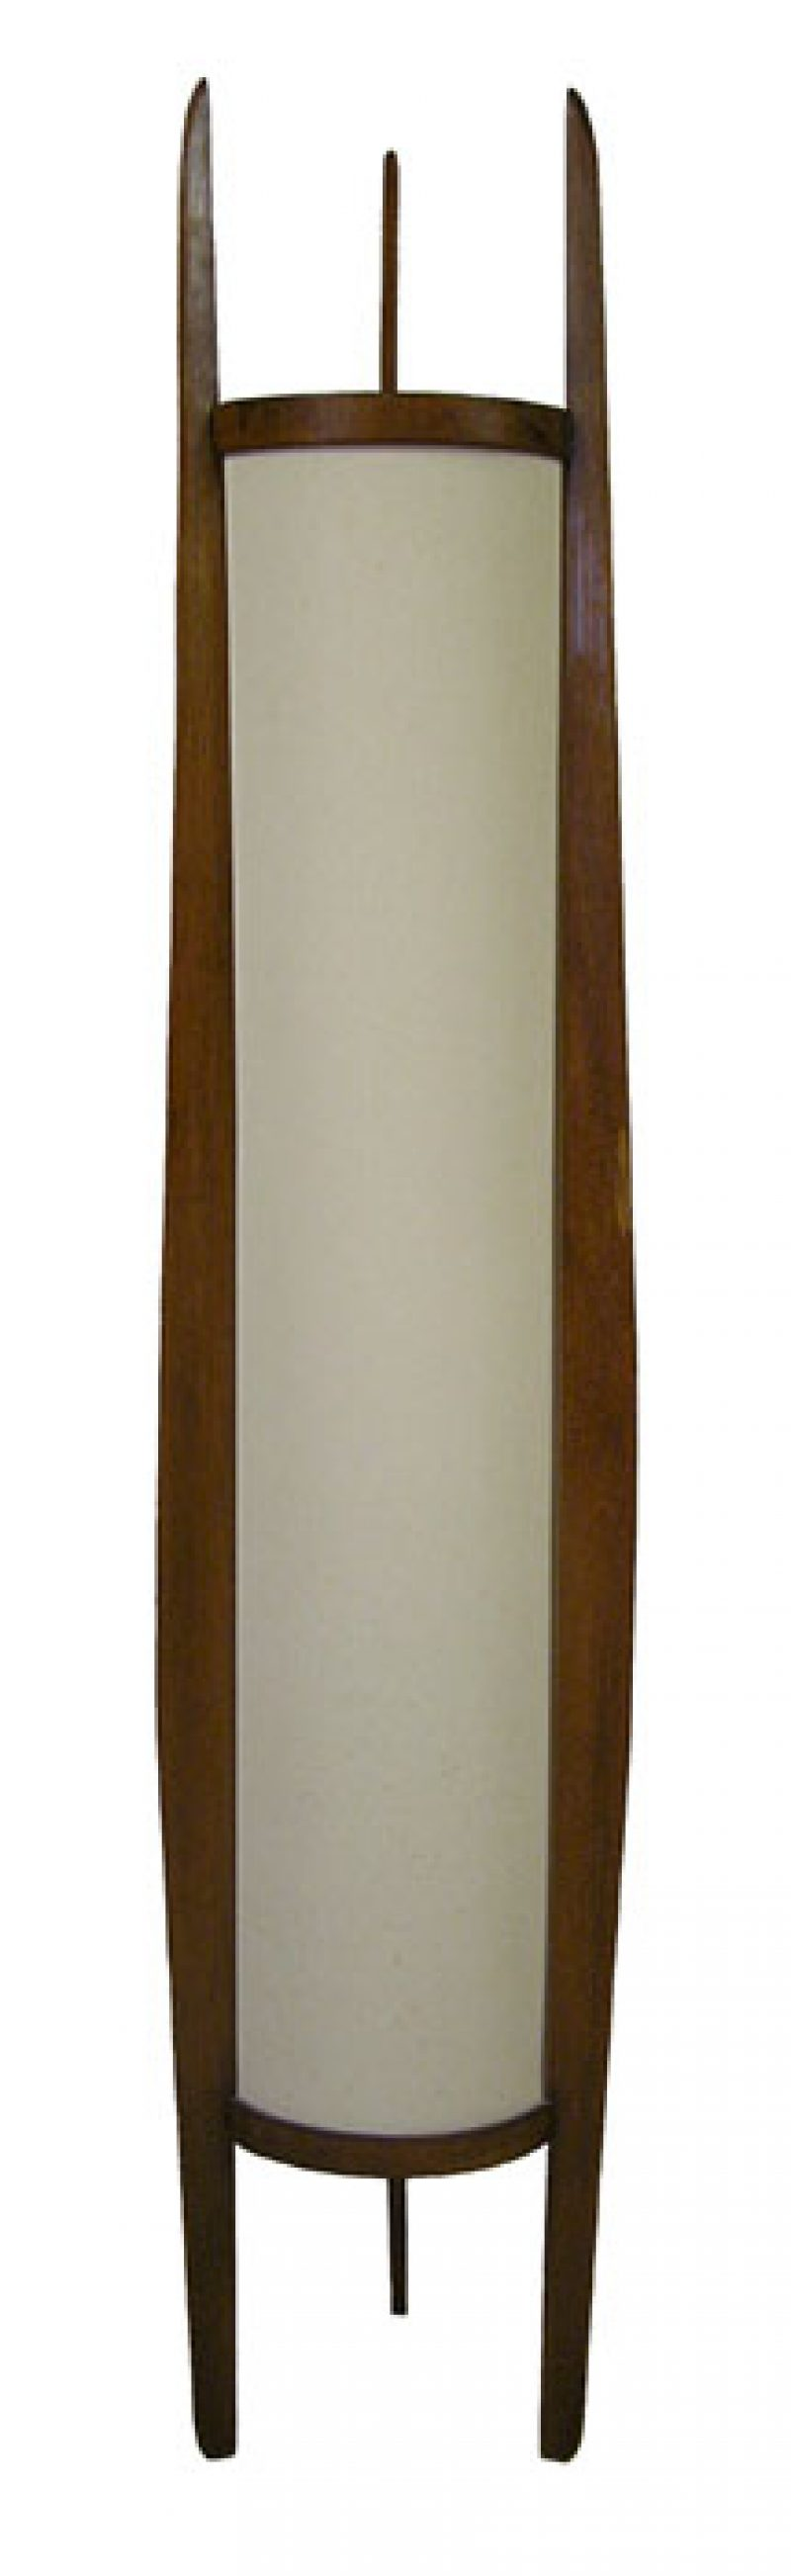 1960s Teak Rocket Floor Lamp